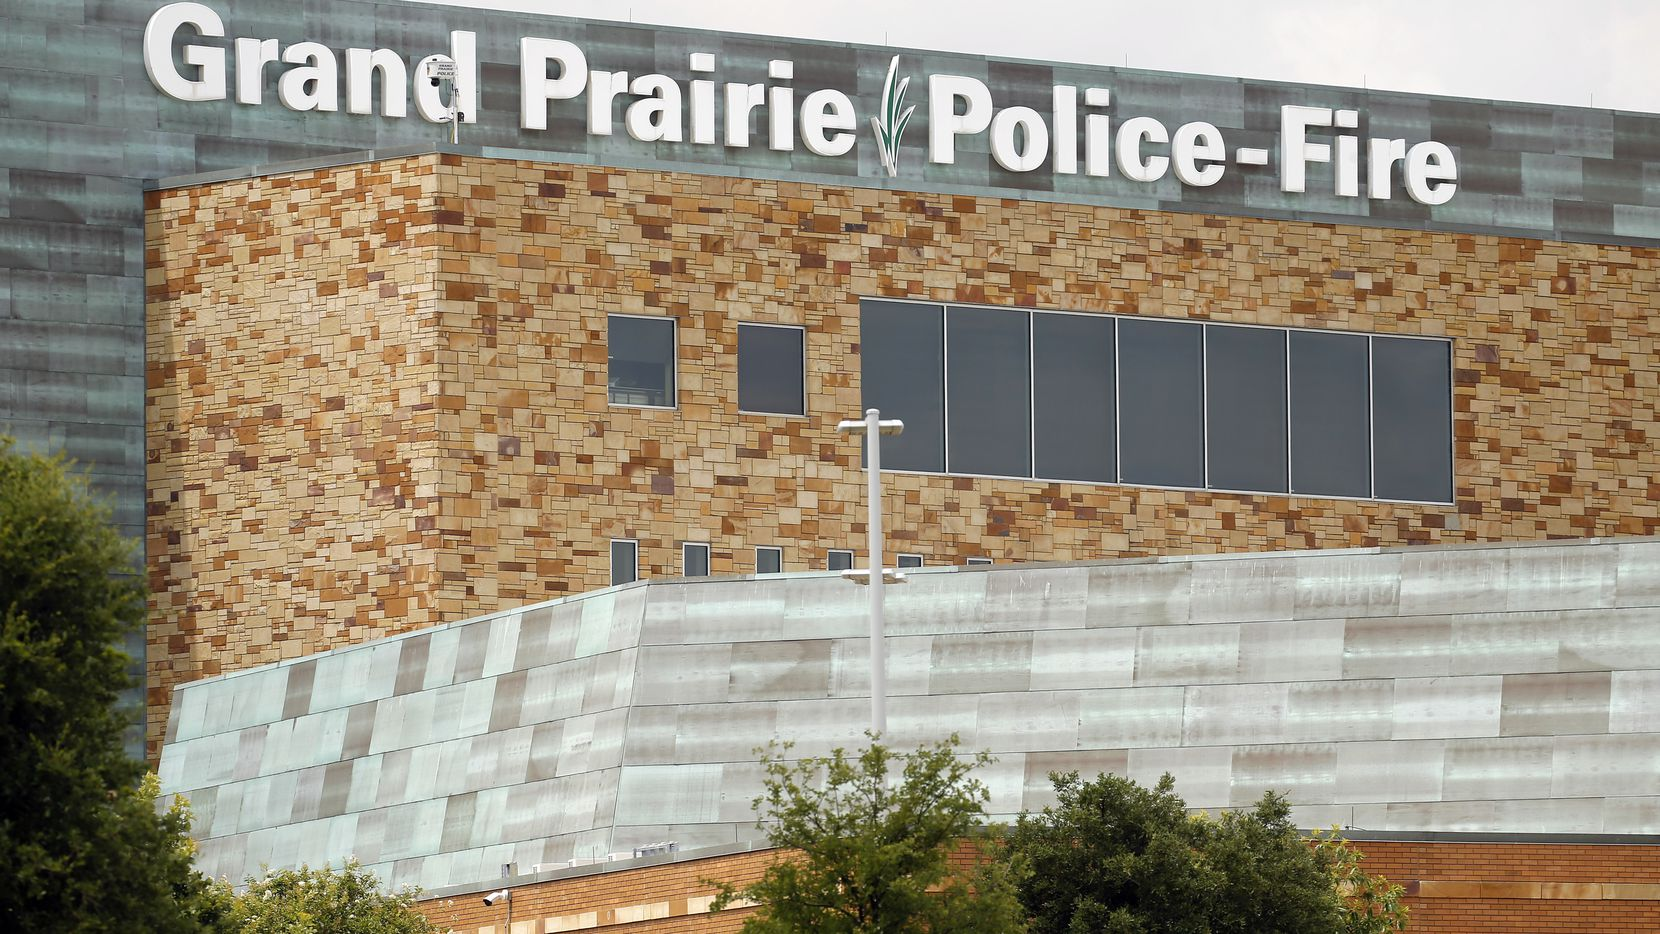 The Grand Prairie Police and Fire Departments administration building in the Epic Central park development along SH 161 in Grand Prairie, Texas, Thursday, June 25, 2020.